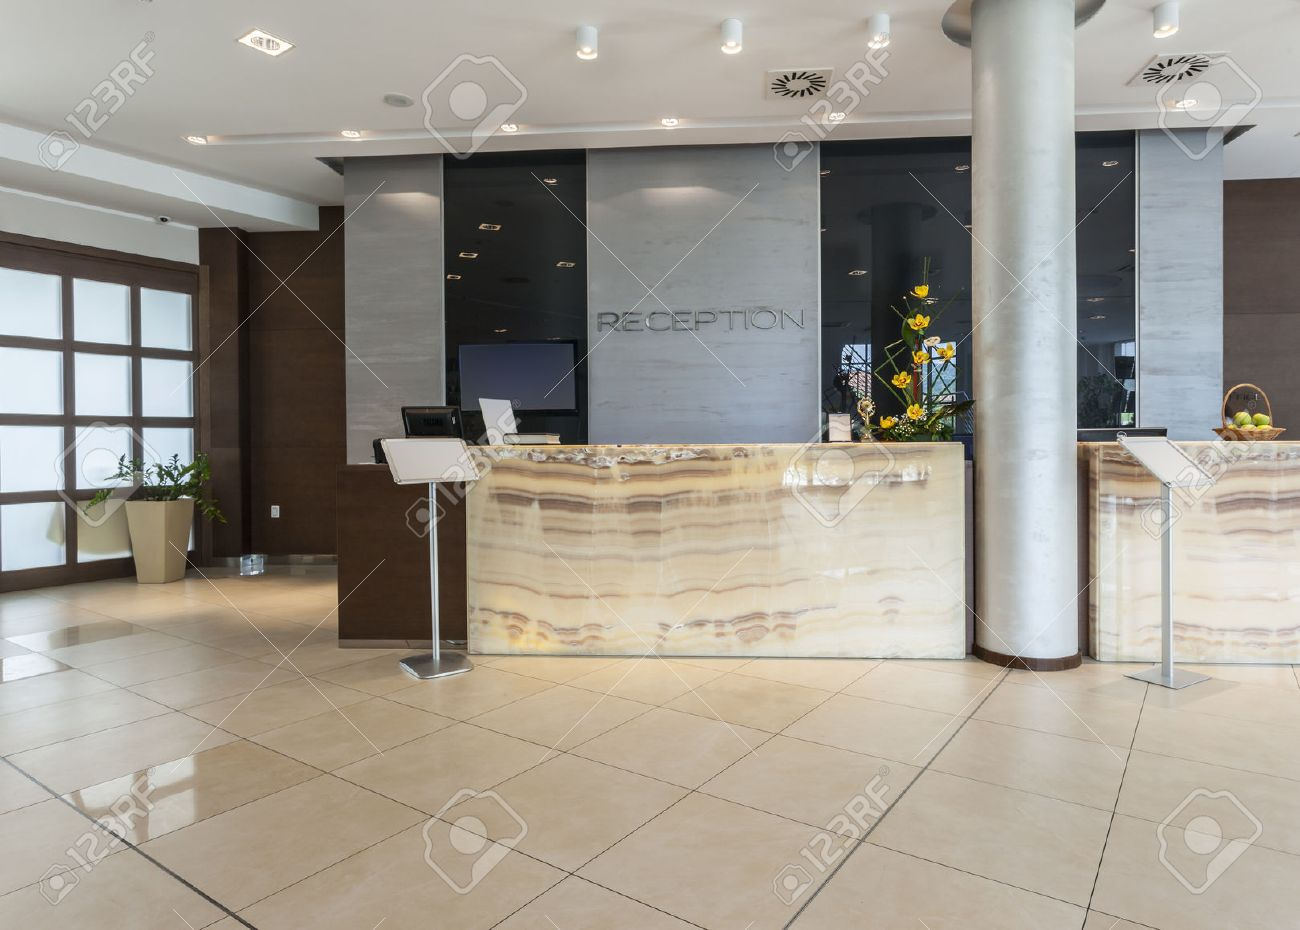 modern hotel reception stock photo, picture and royalty free image